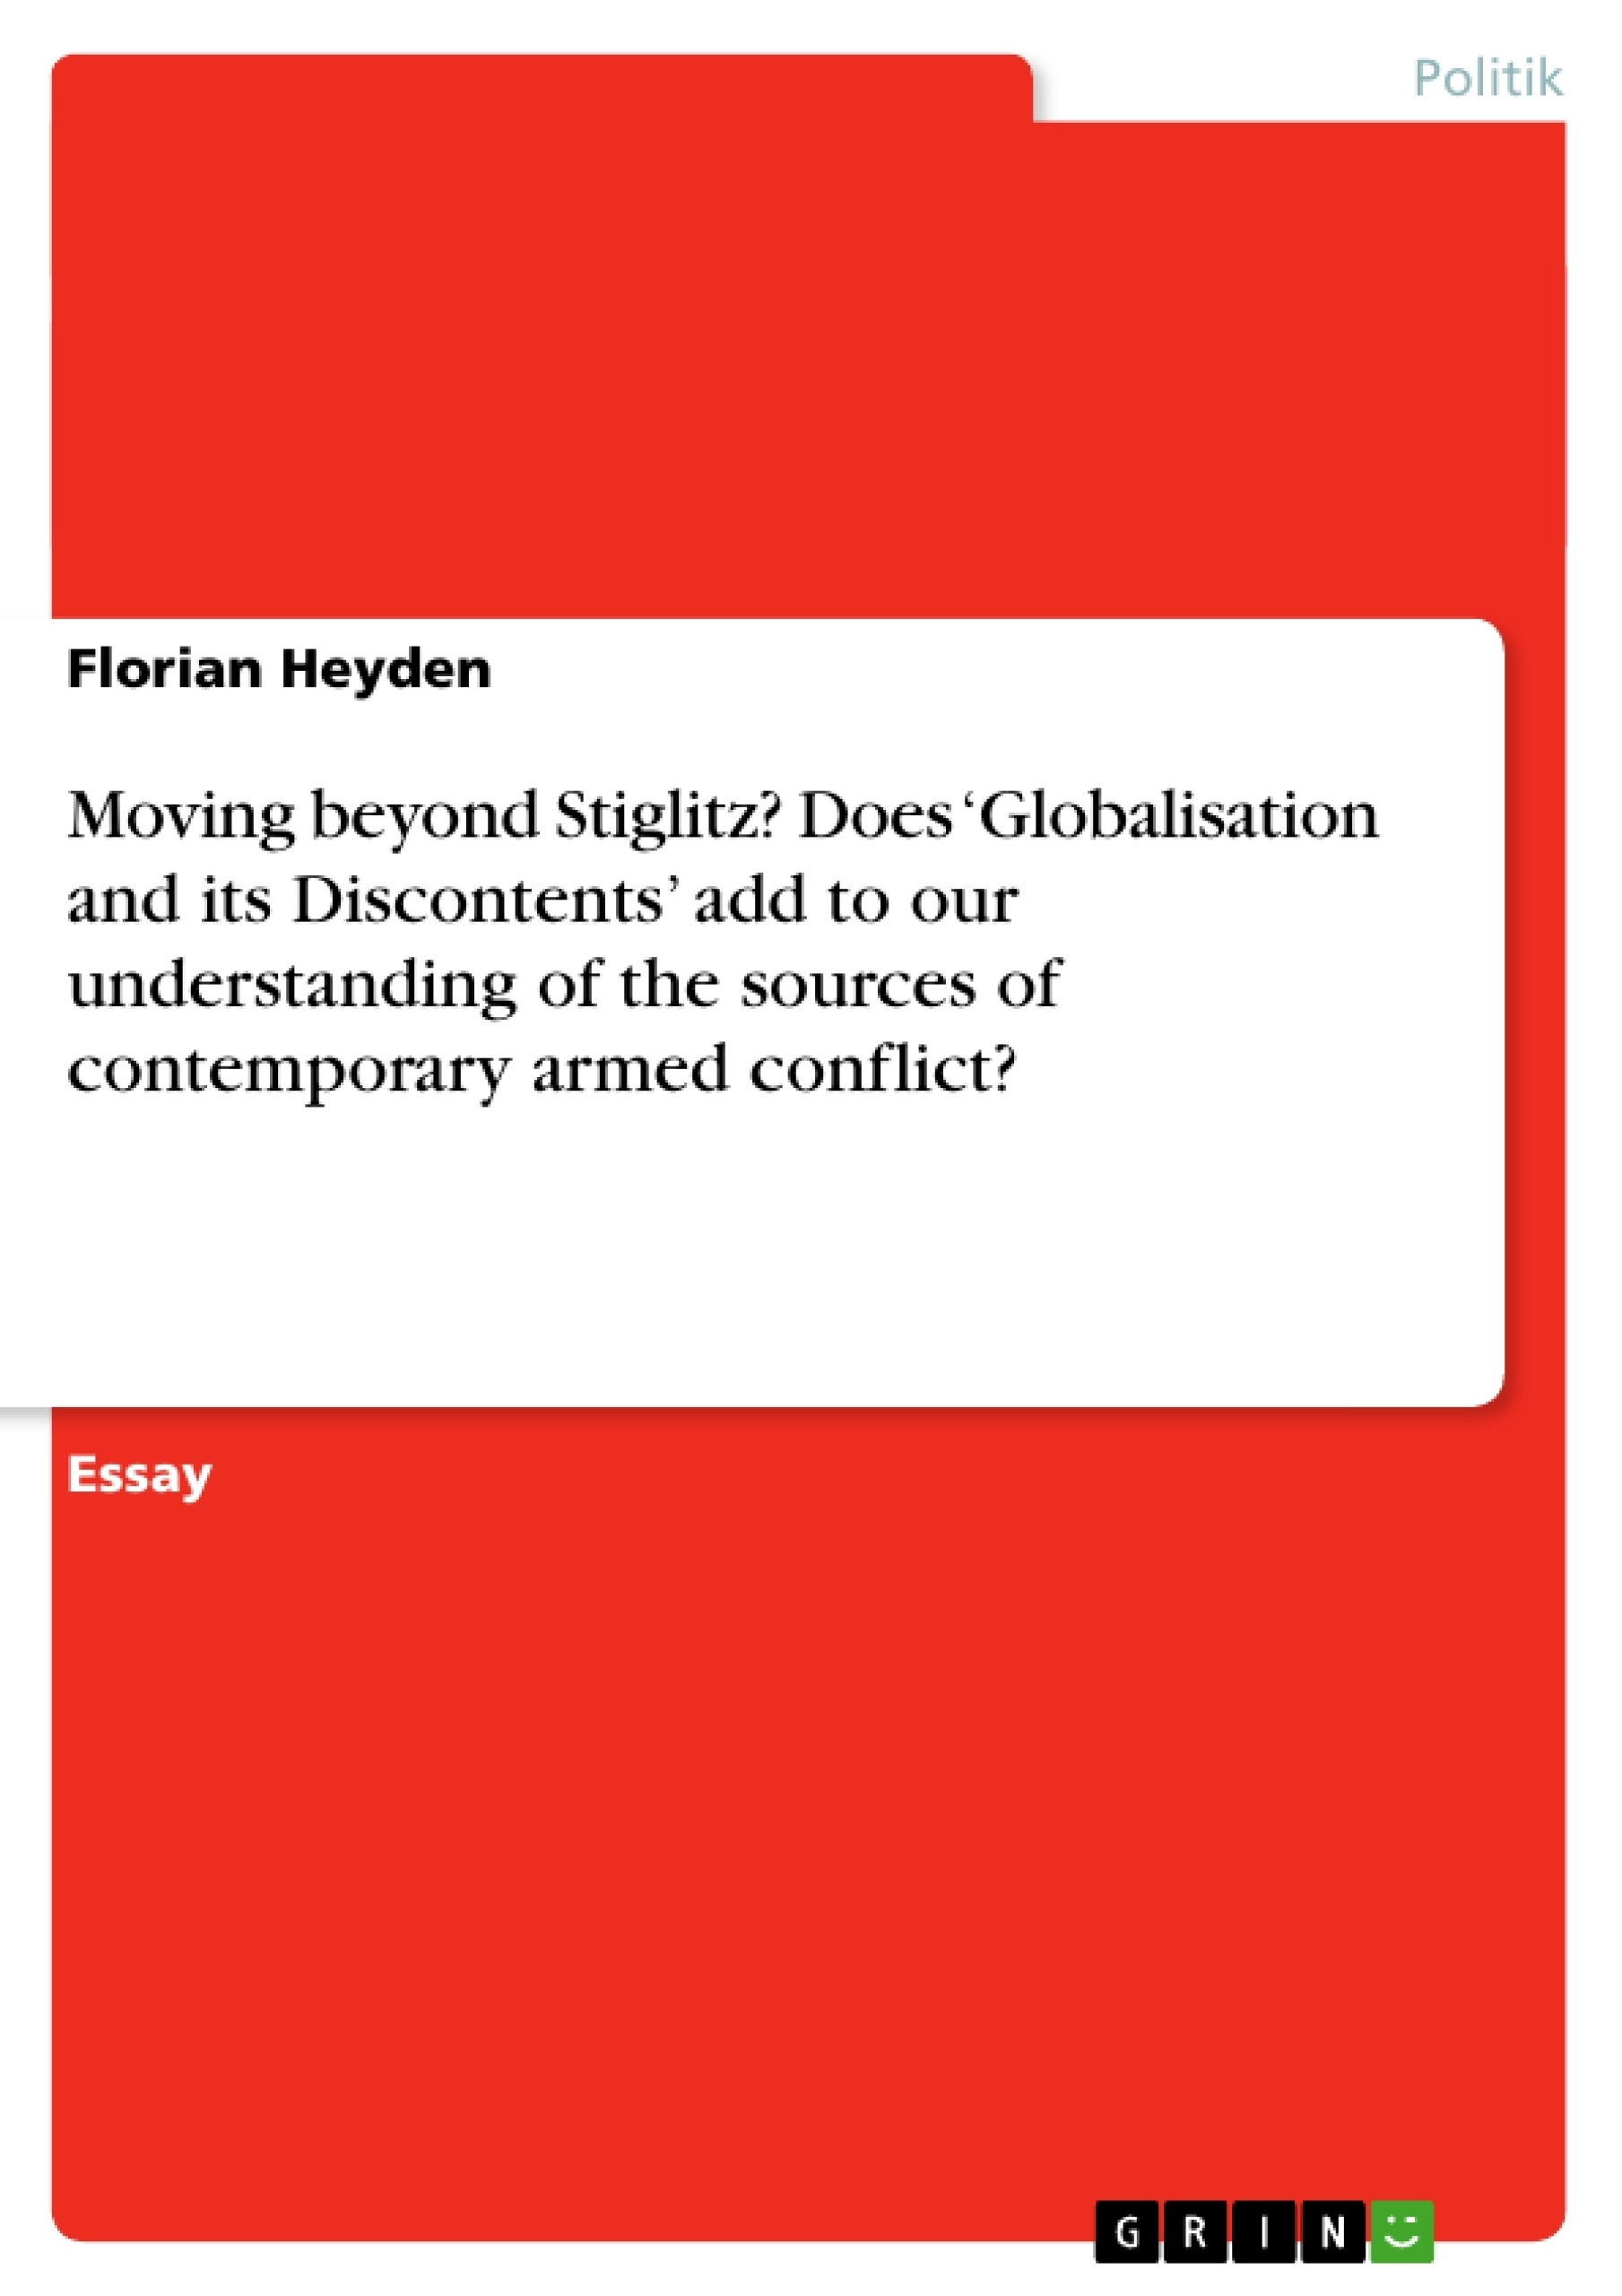 Titel: Moving beyond Stiglitz? Does 'Globalisation and its Discontents' add to our understanding of the sources of contemporary armed conflict?